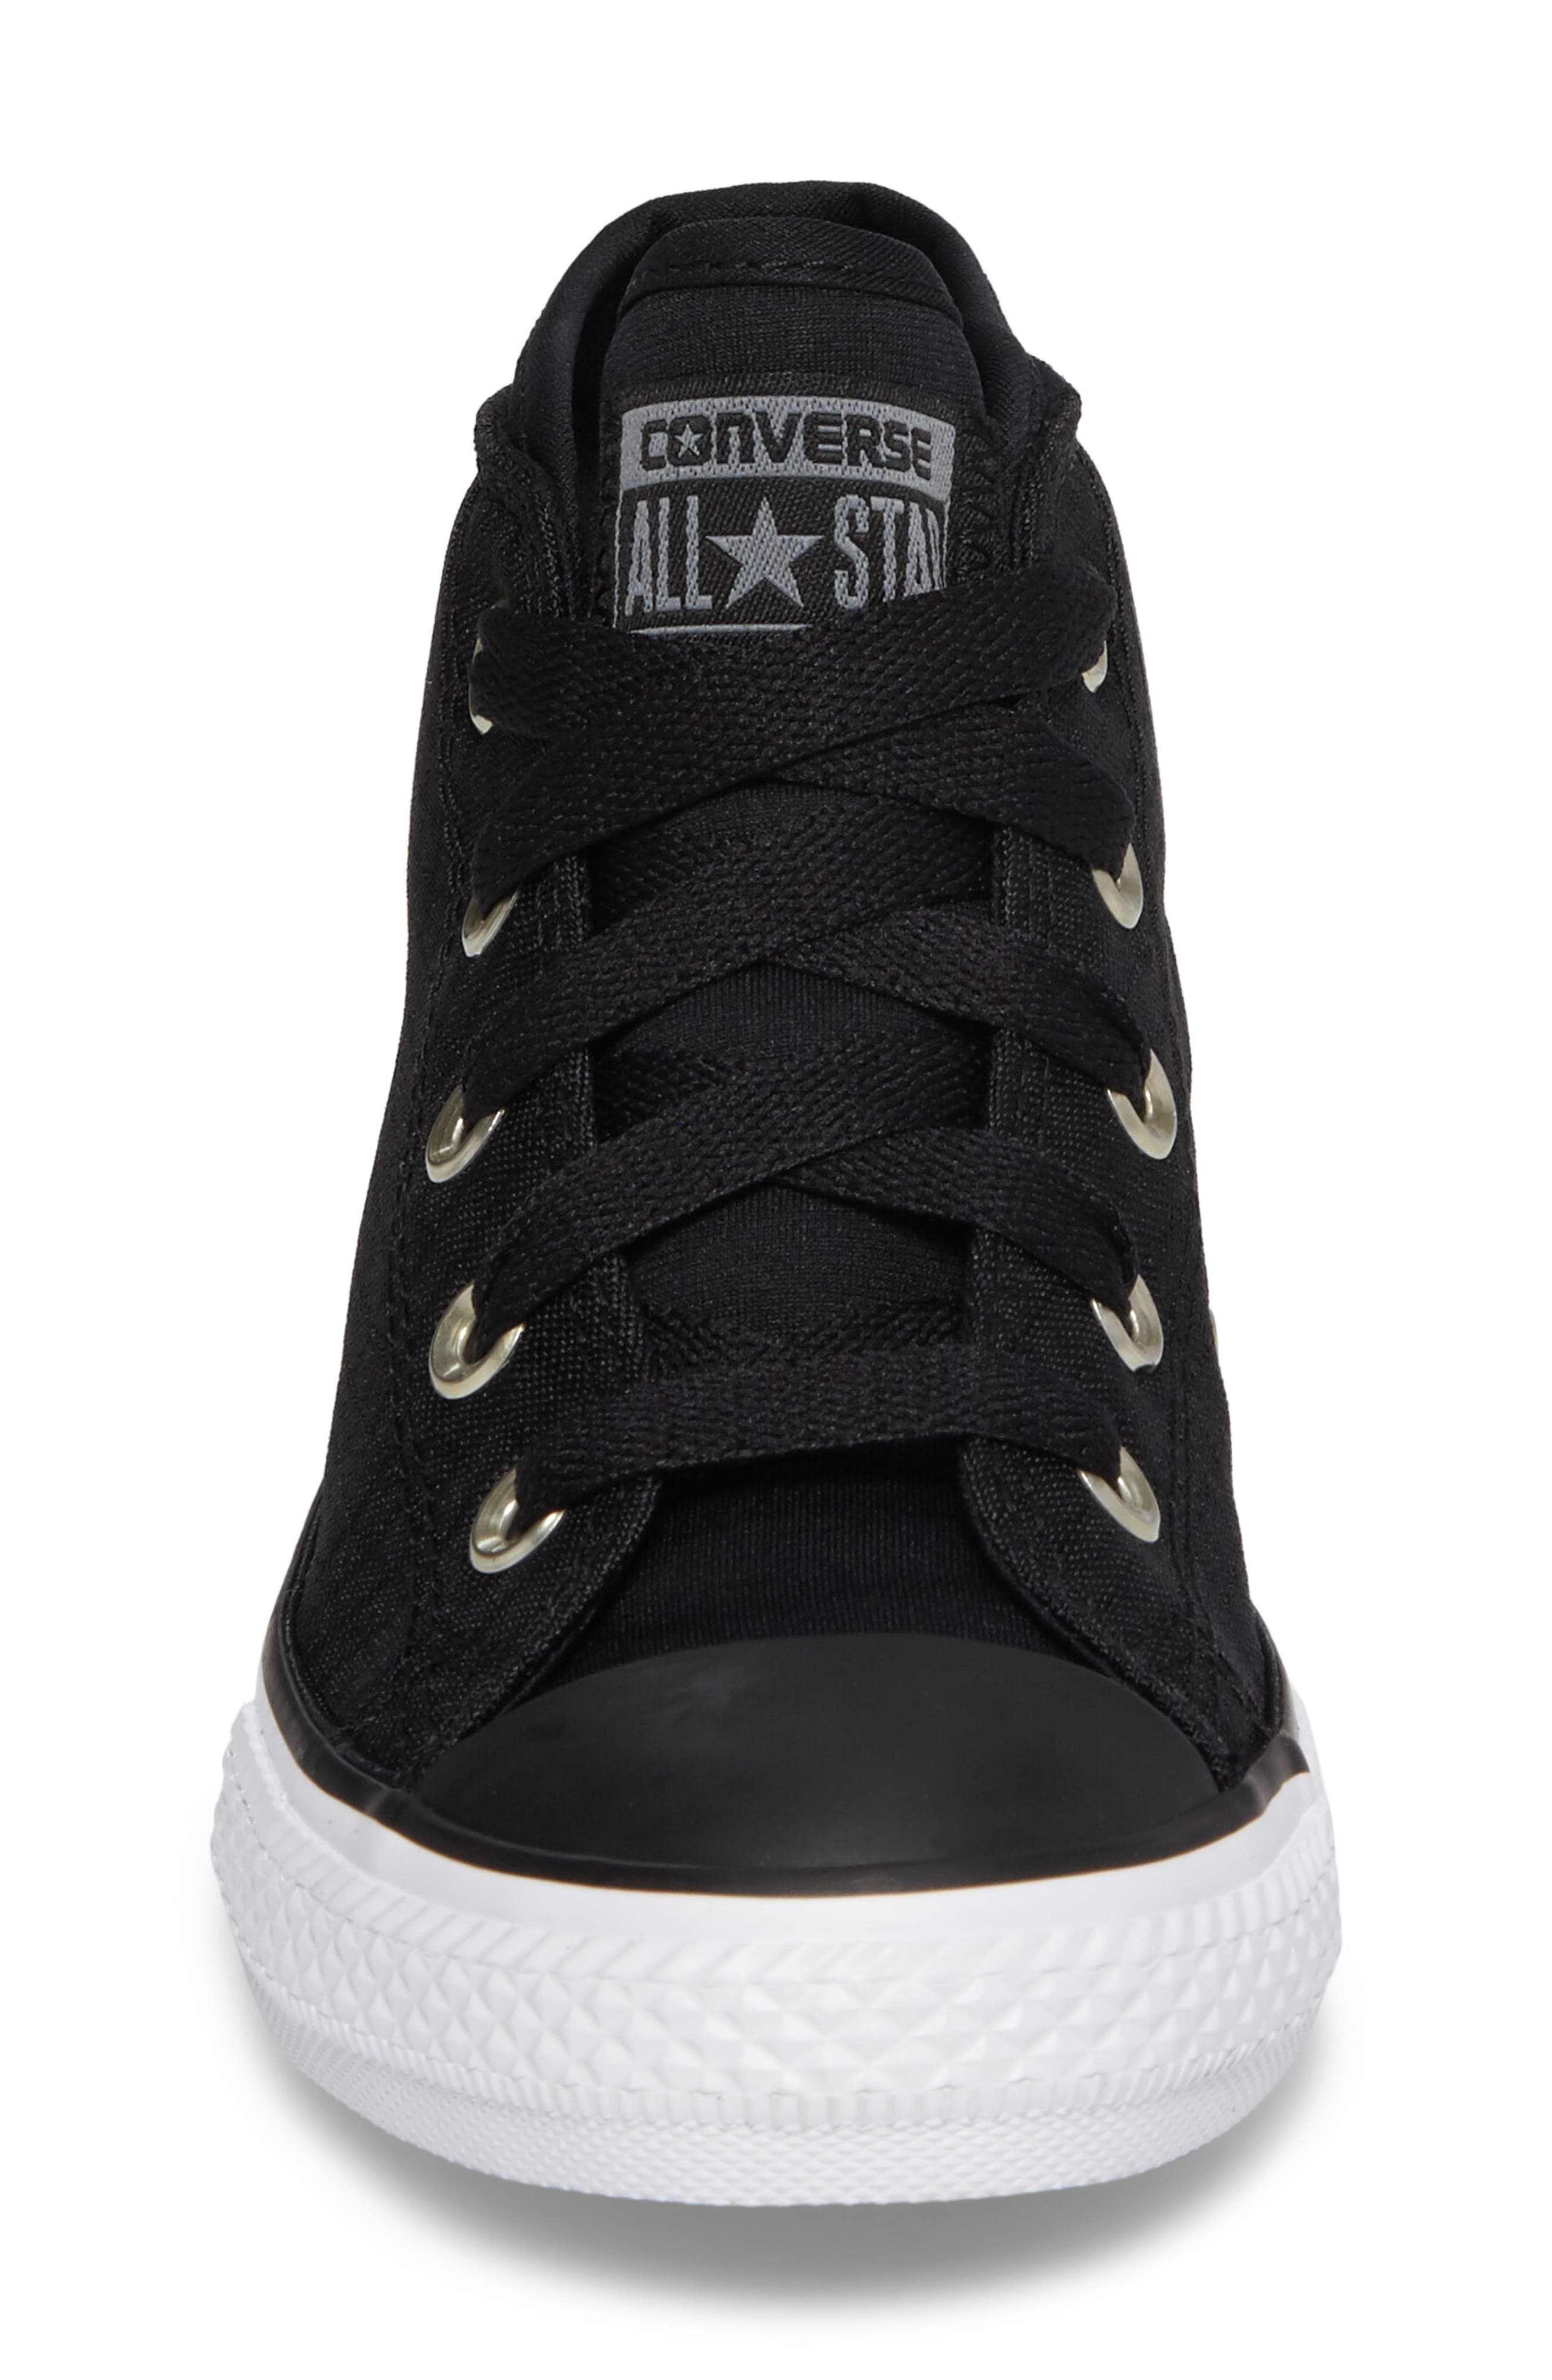 Alternate Image 4  - Converse Chuck Taylor® All Star® Syde Street High Top Sneaker (Toddler, Little Kid & Big Kid)